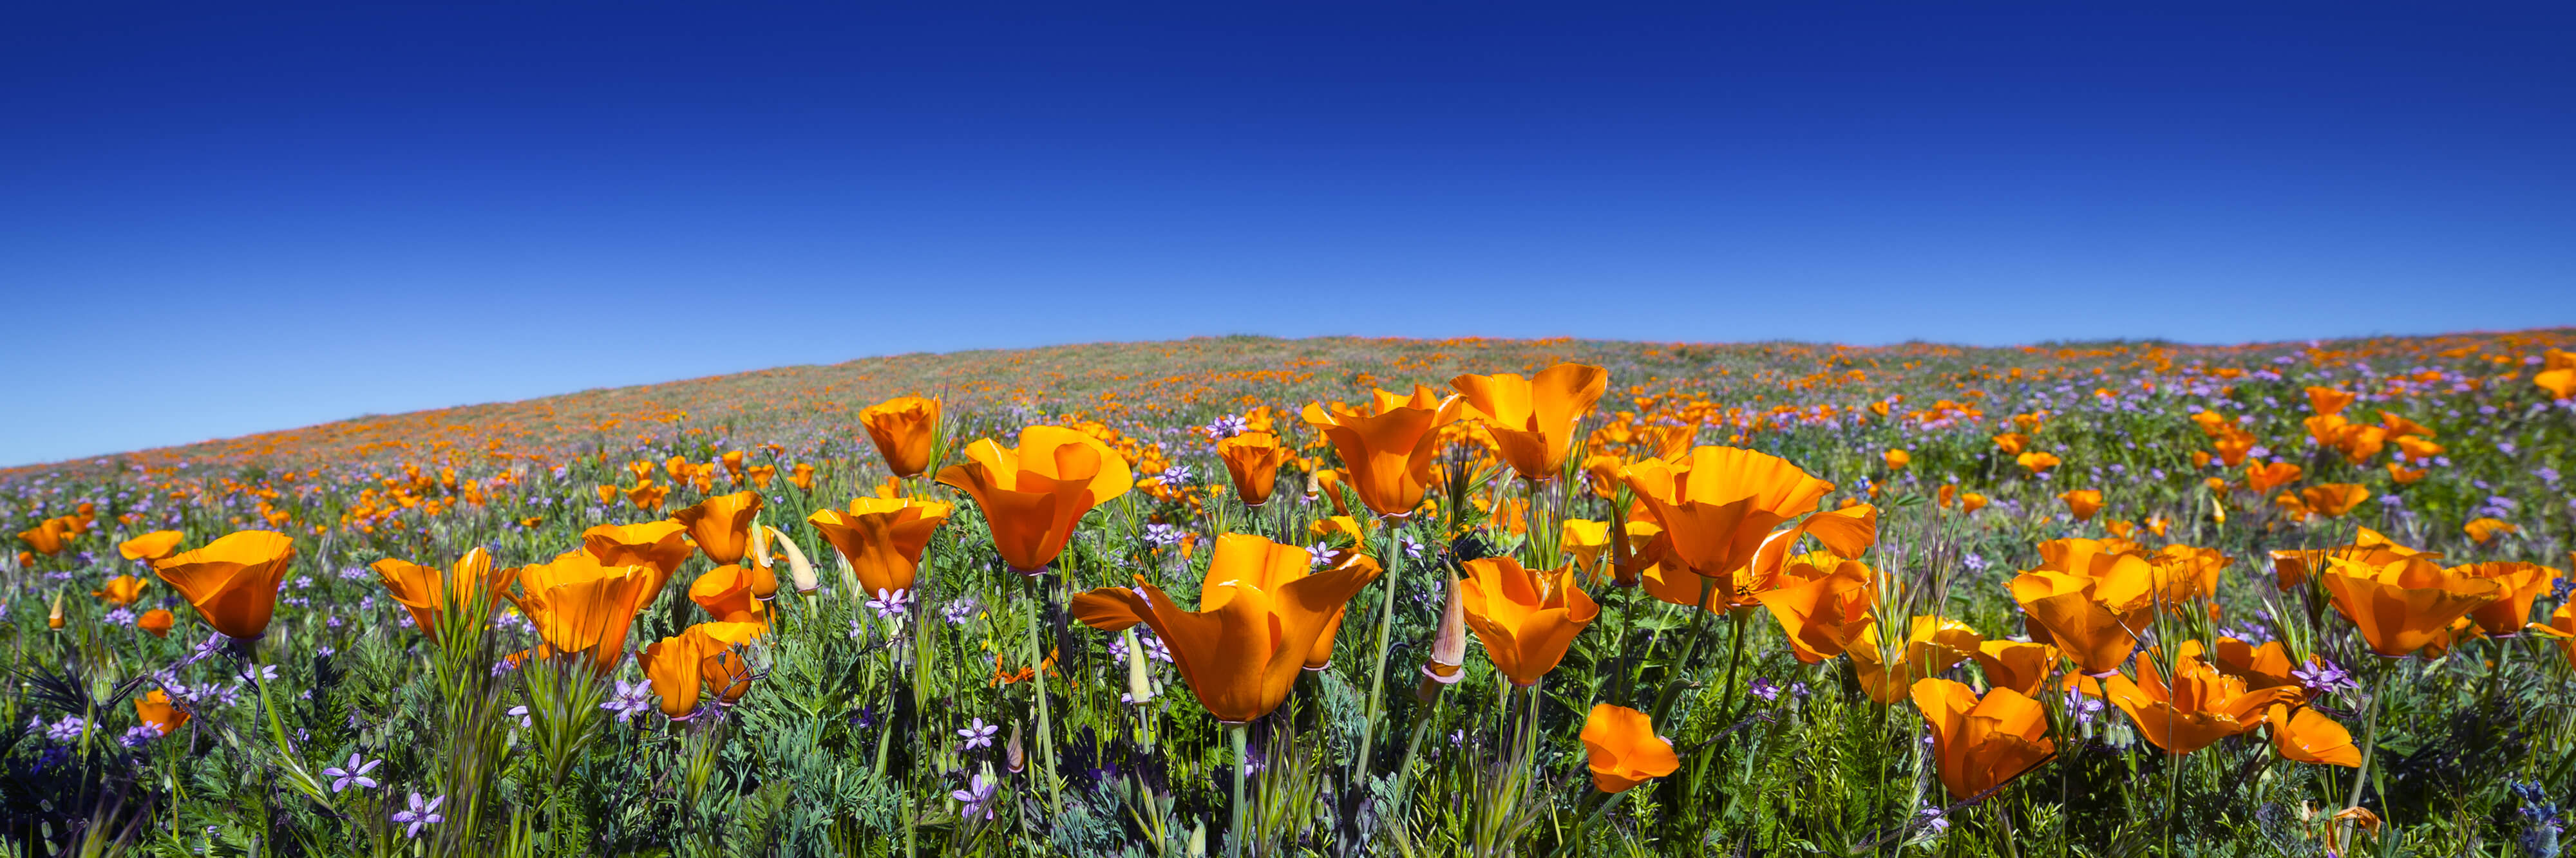 Wild California Poppies at Antelope Valley